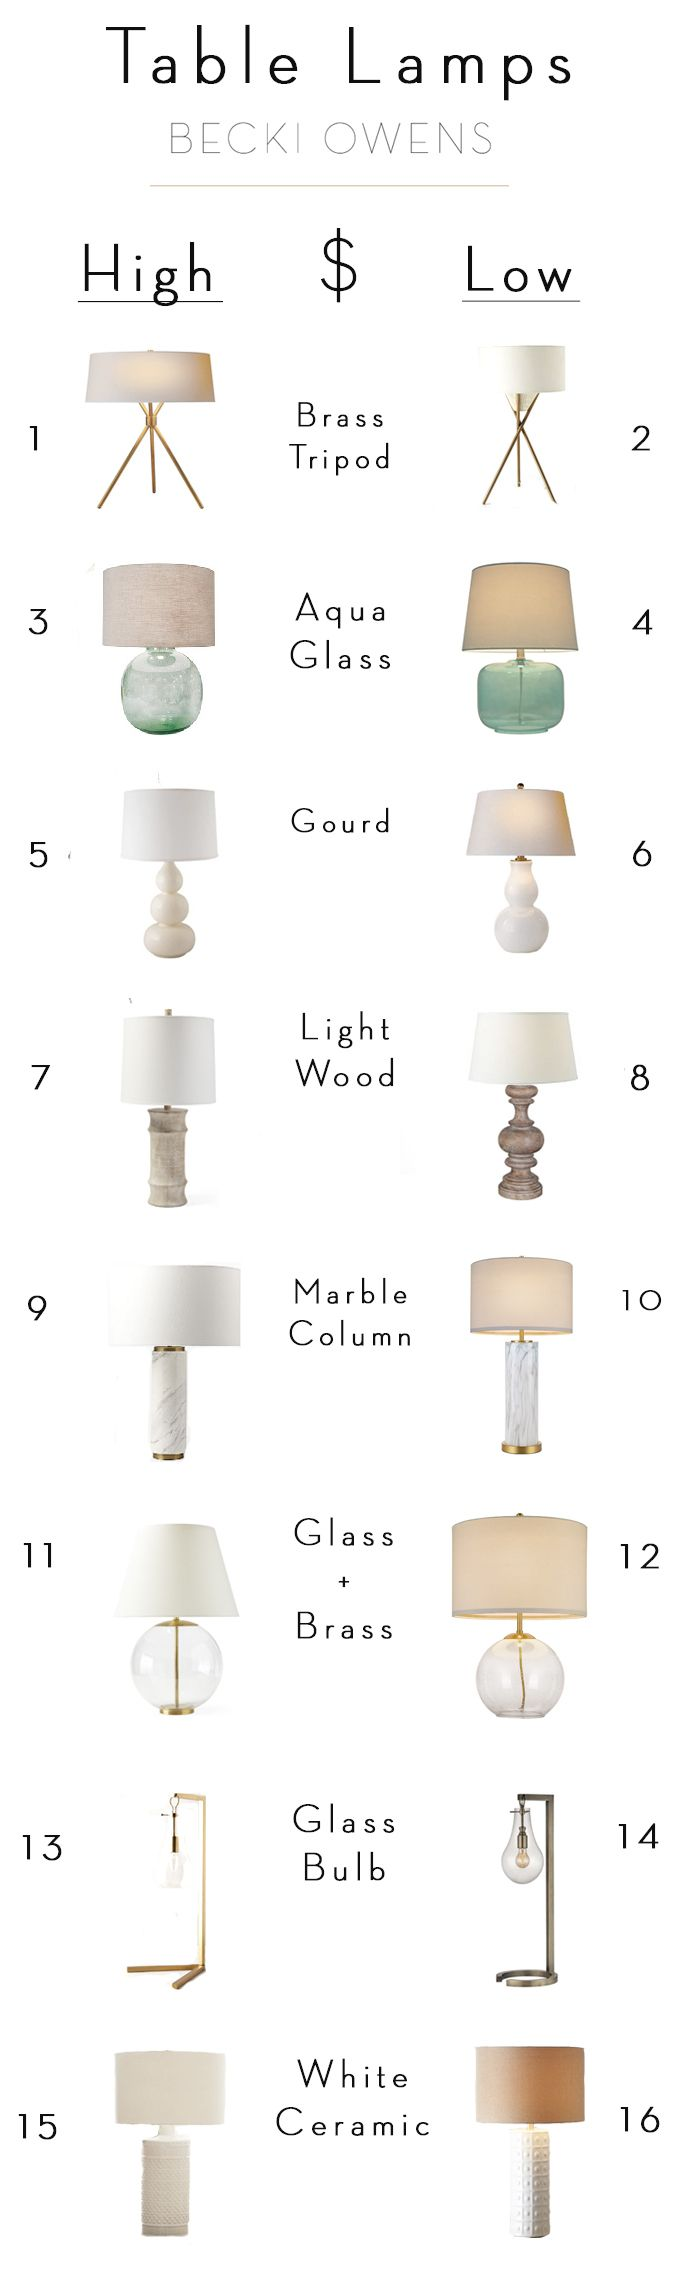 Accent lighting is one of my favorite elements in any space and table lamps are one of the best ways to introduce it. Pretty table lamps are the perfect accessory for entryway way consoles, side tables and nightstands. They add character to the room and can be turned on to create a lively vibe for …